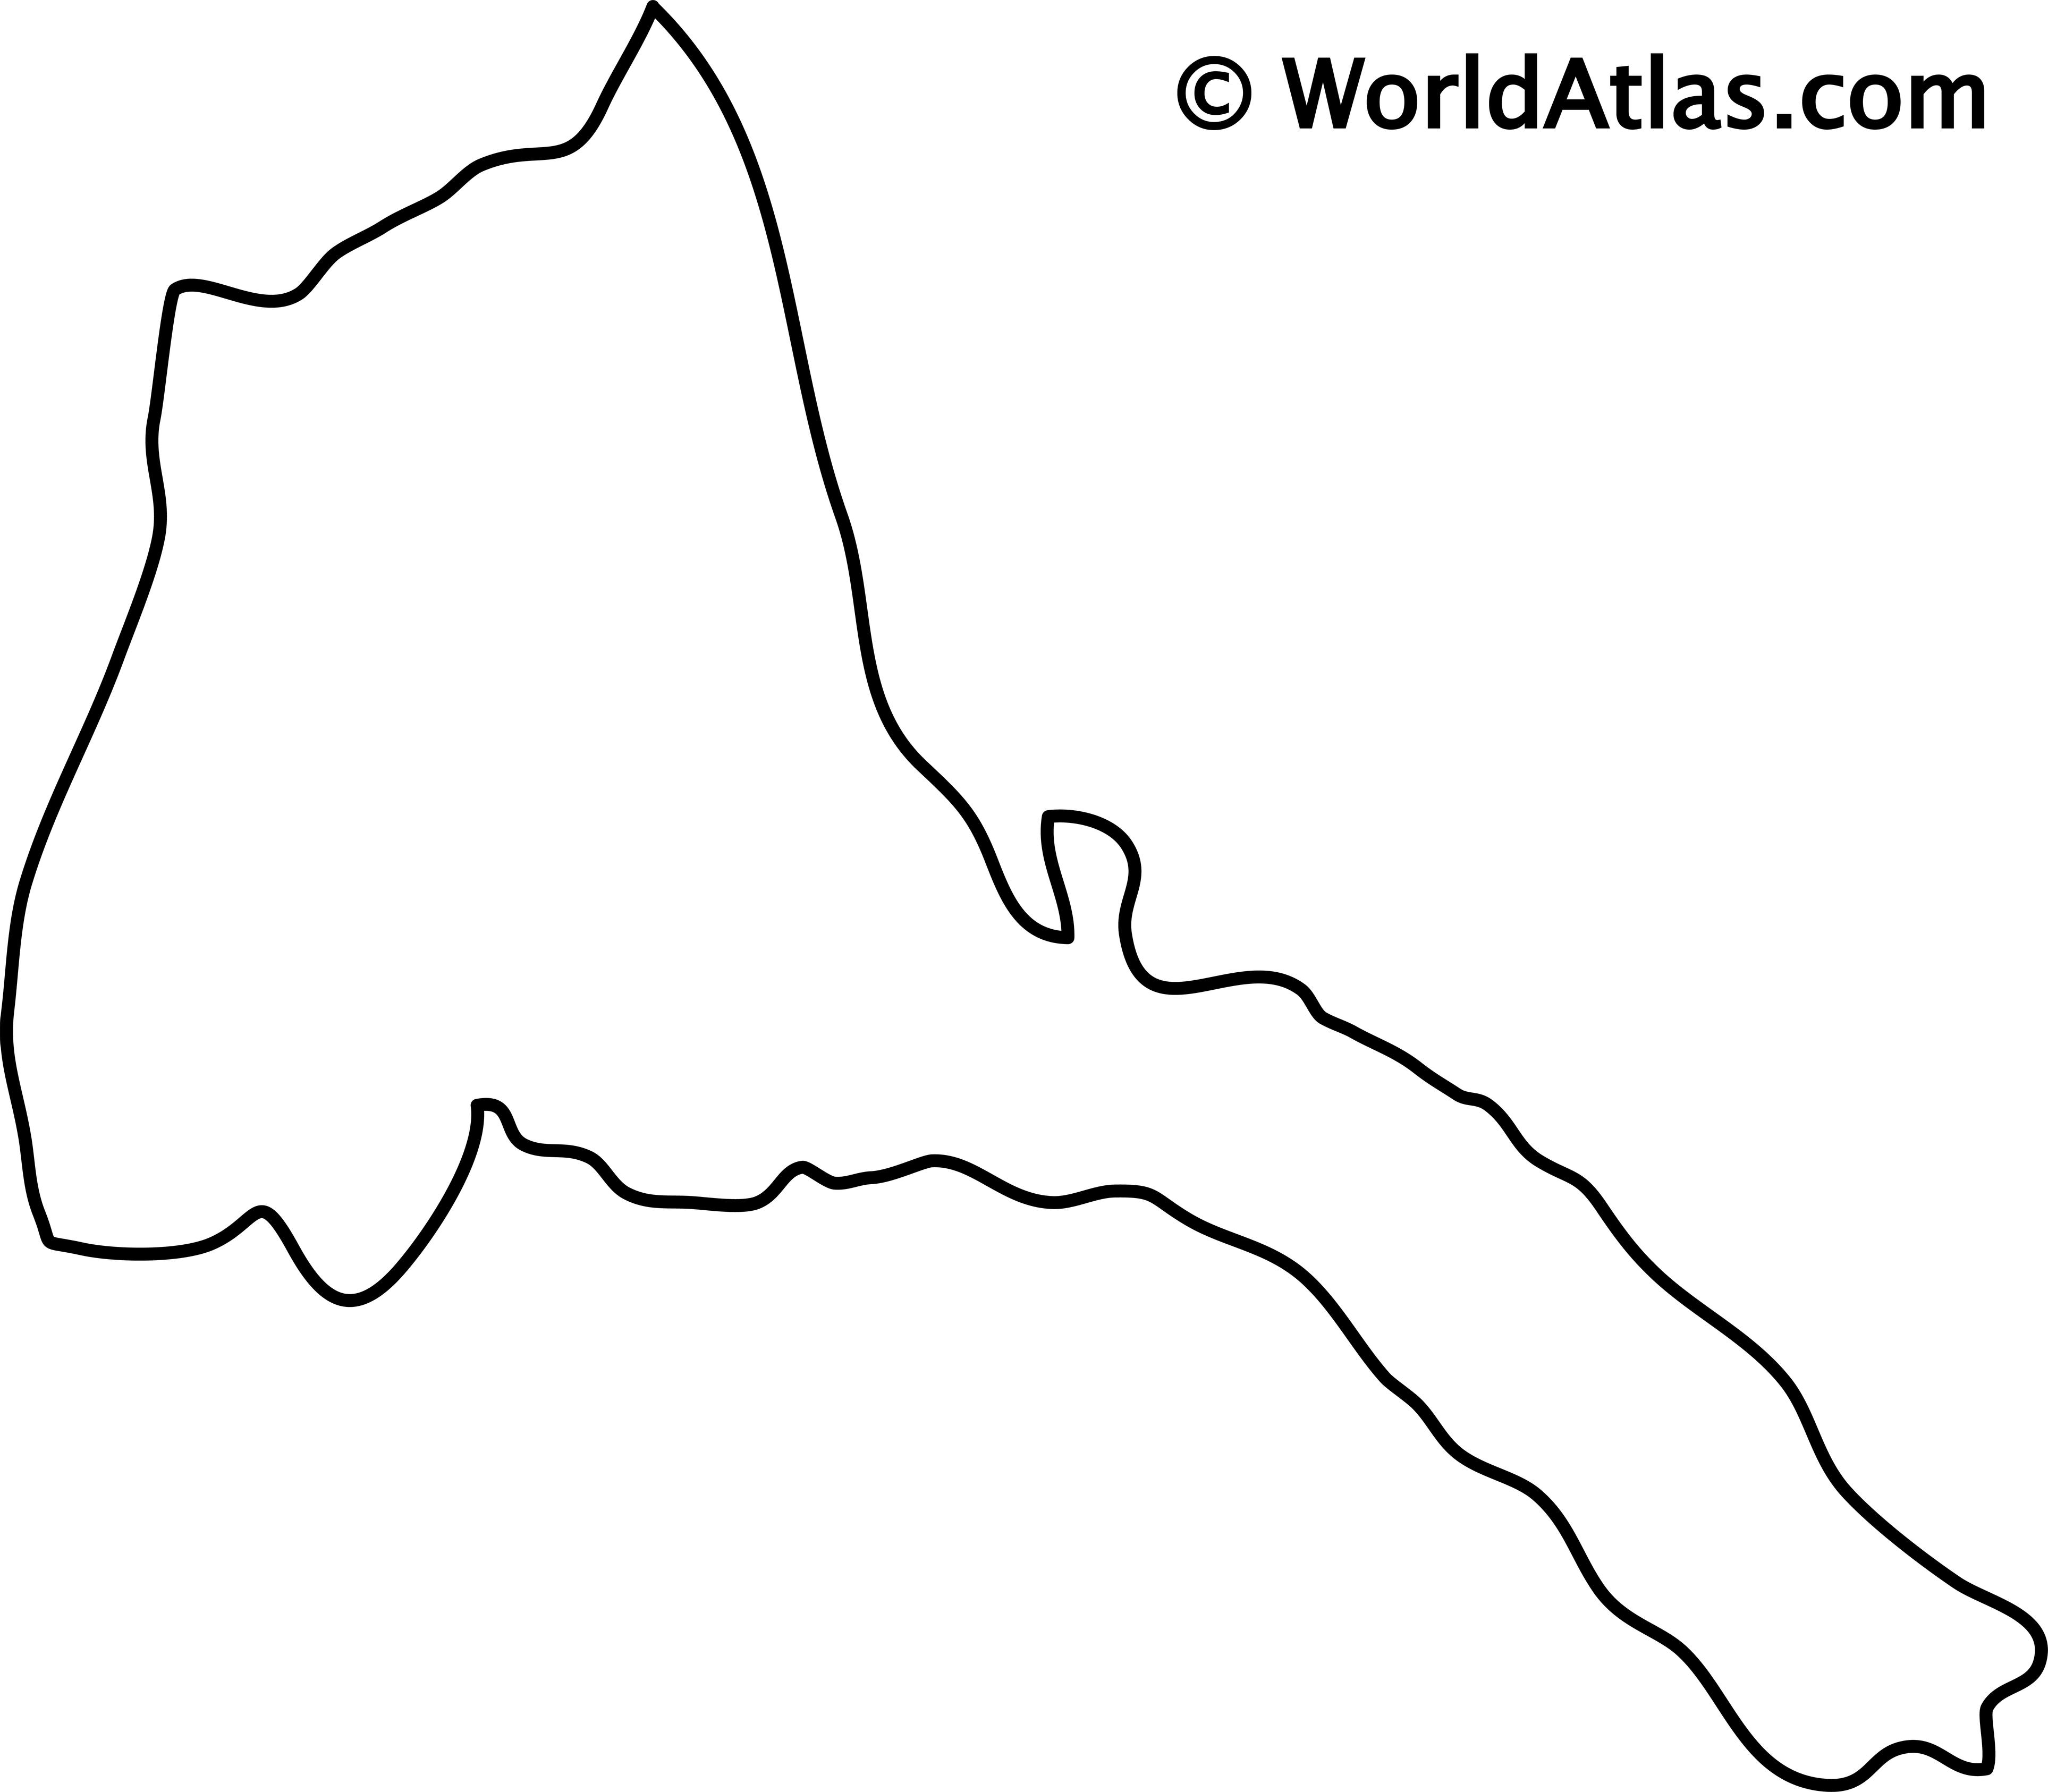 Blank Outline Map of Eritrea